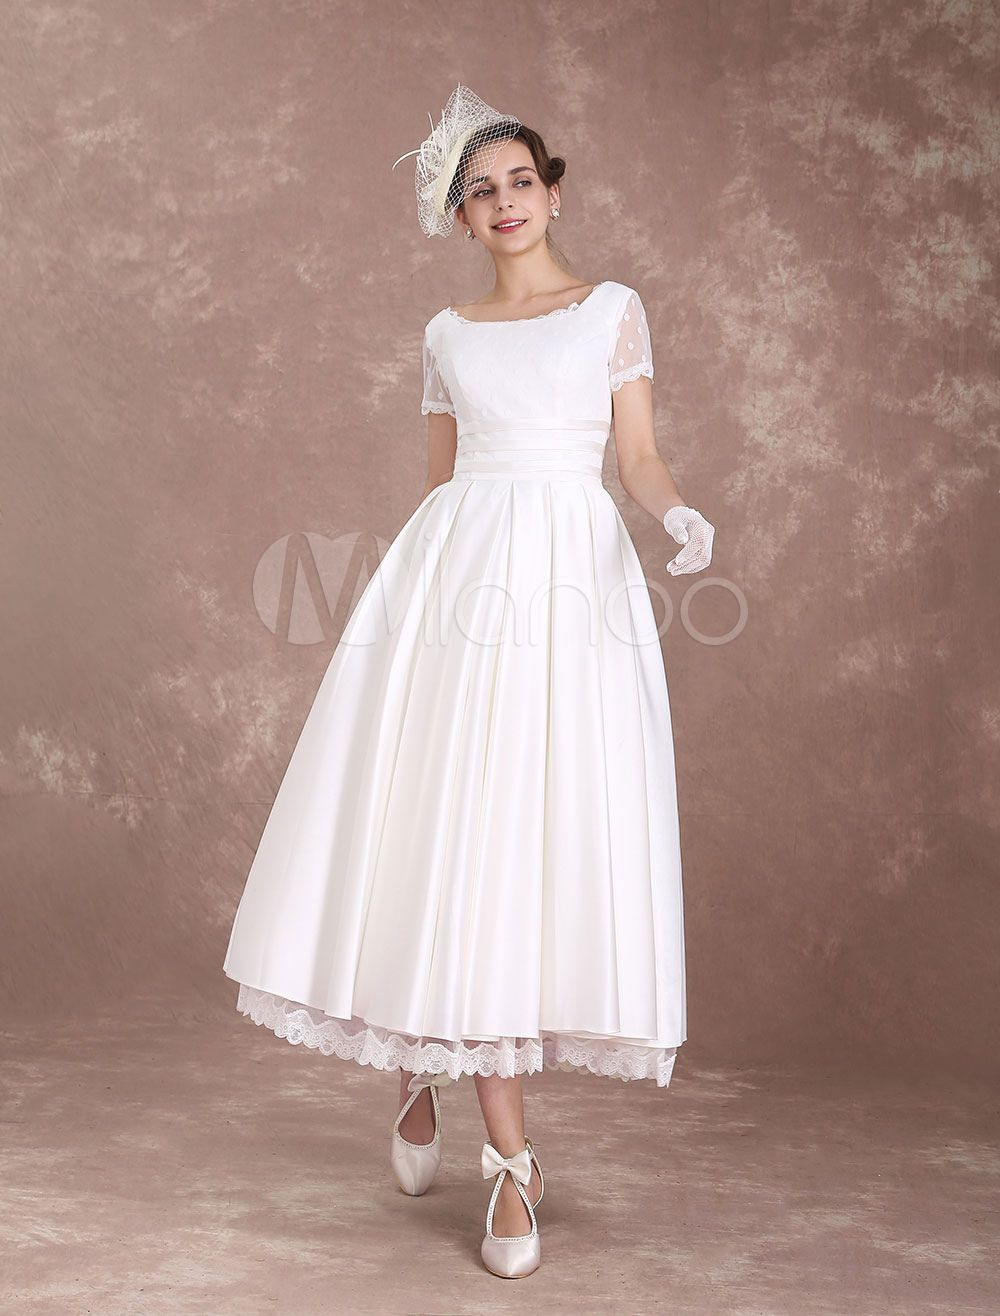 Vintage wedding dress short sleeve us bridal dress backless